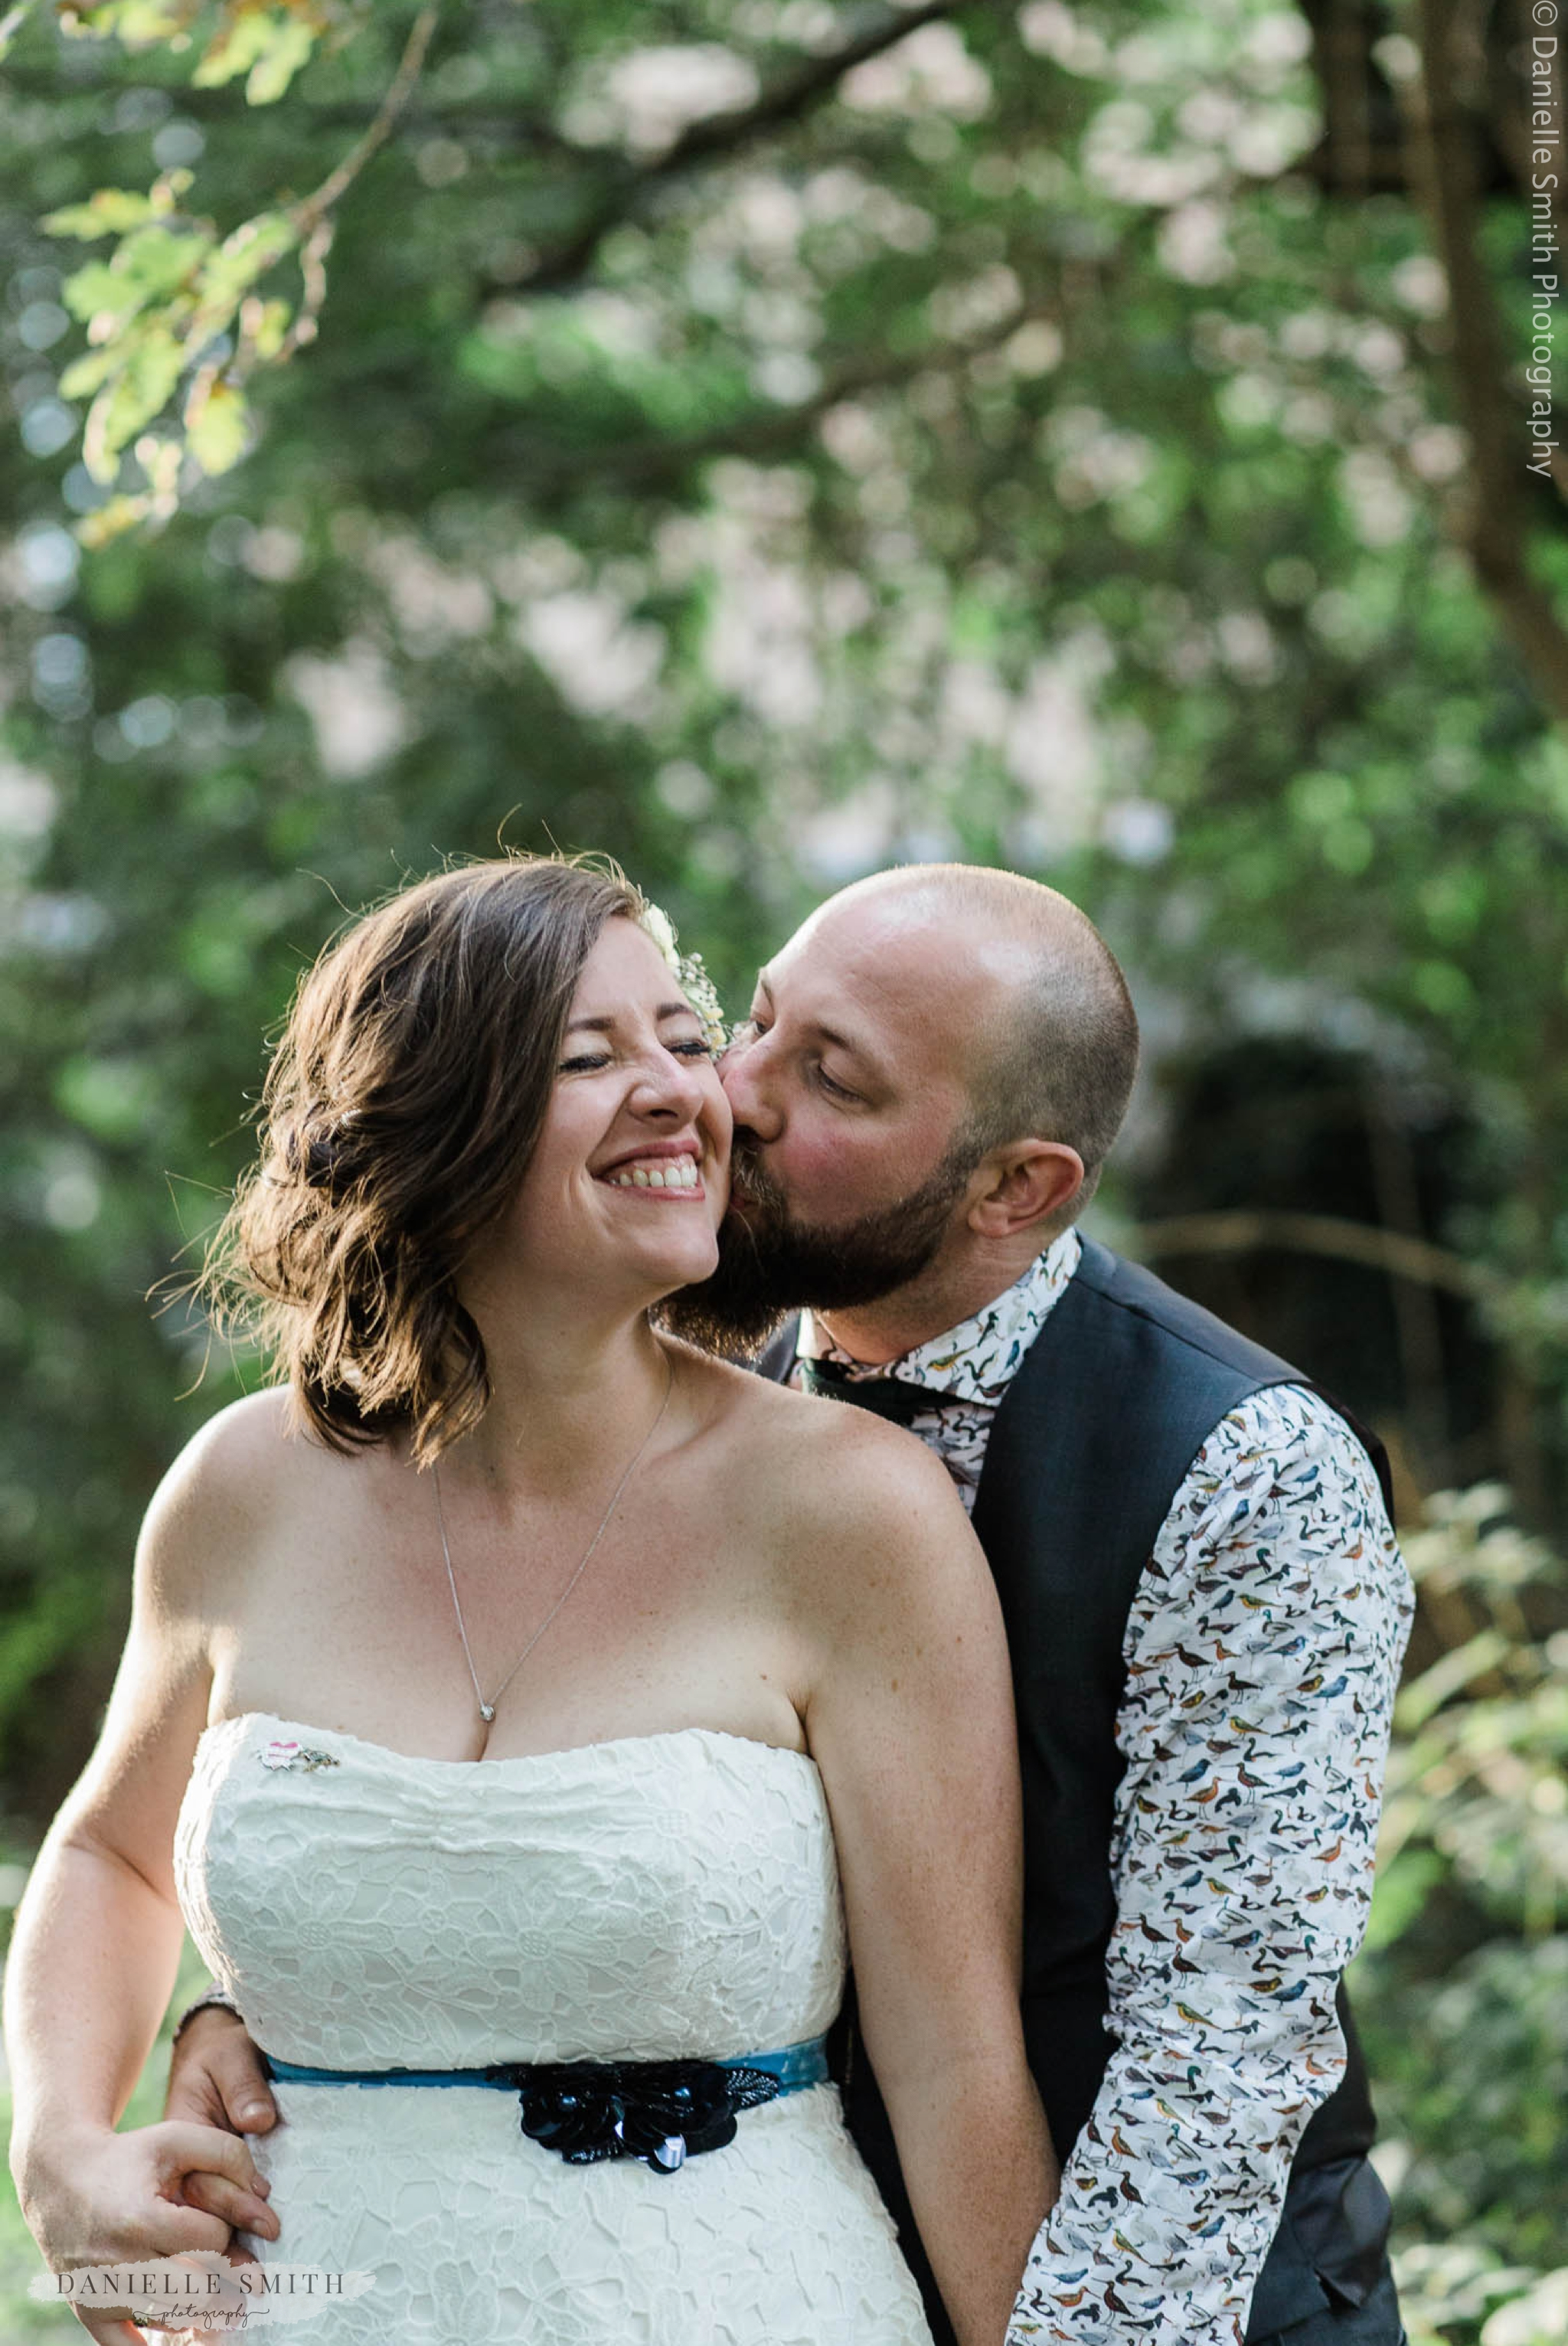 groom kissing brides cheek - relaxed and fun wedding